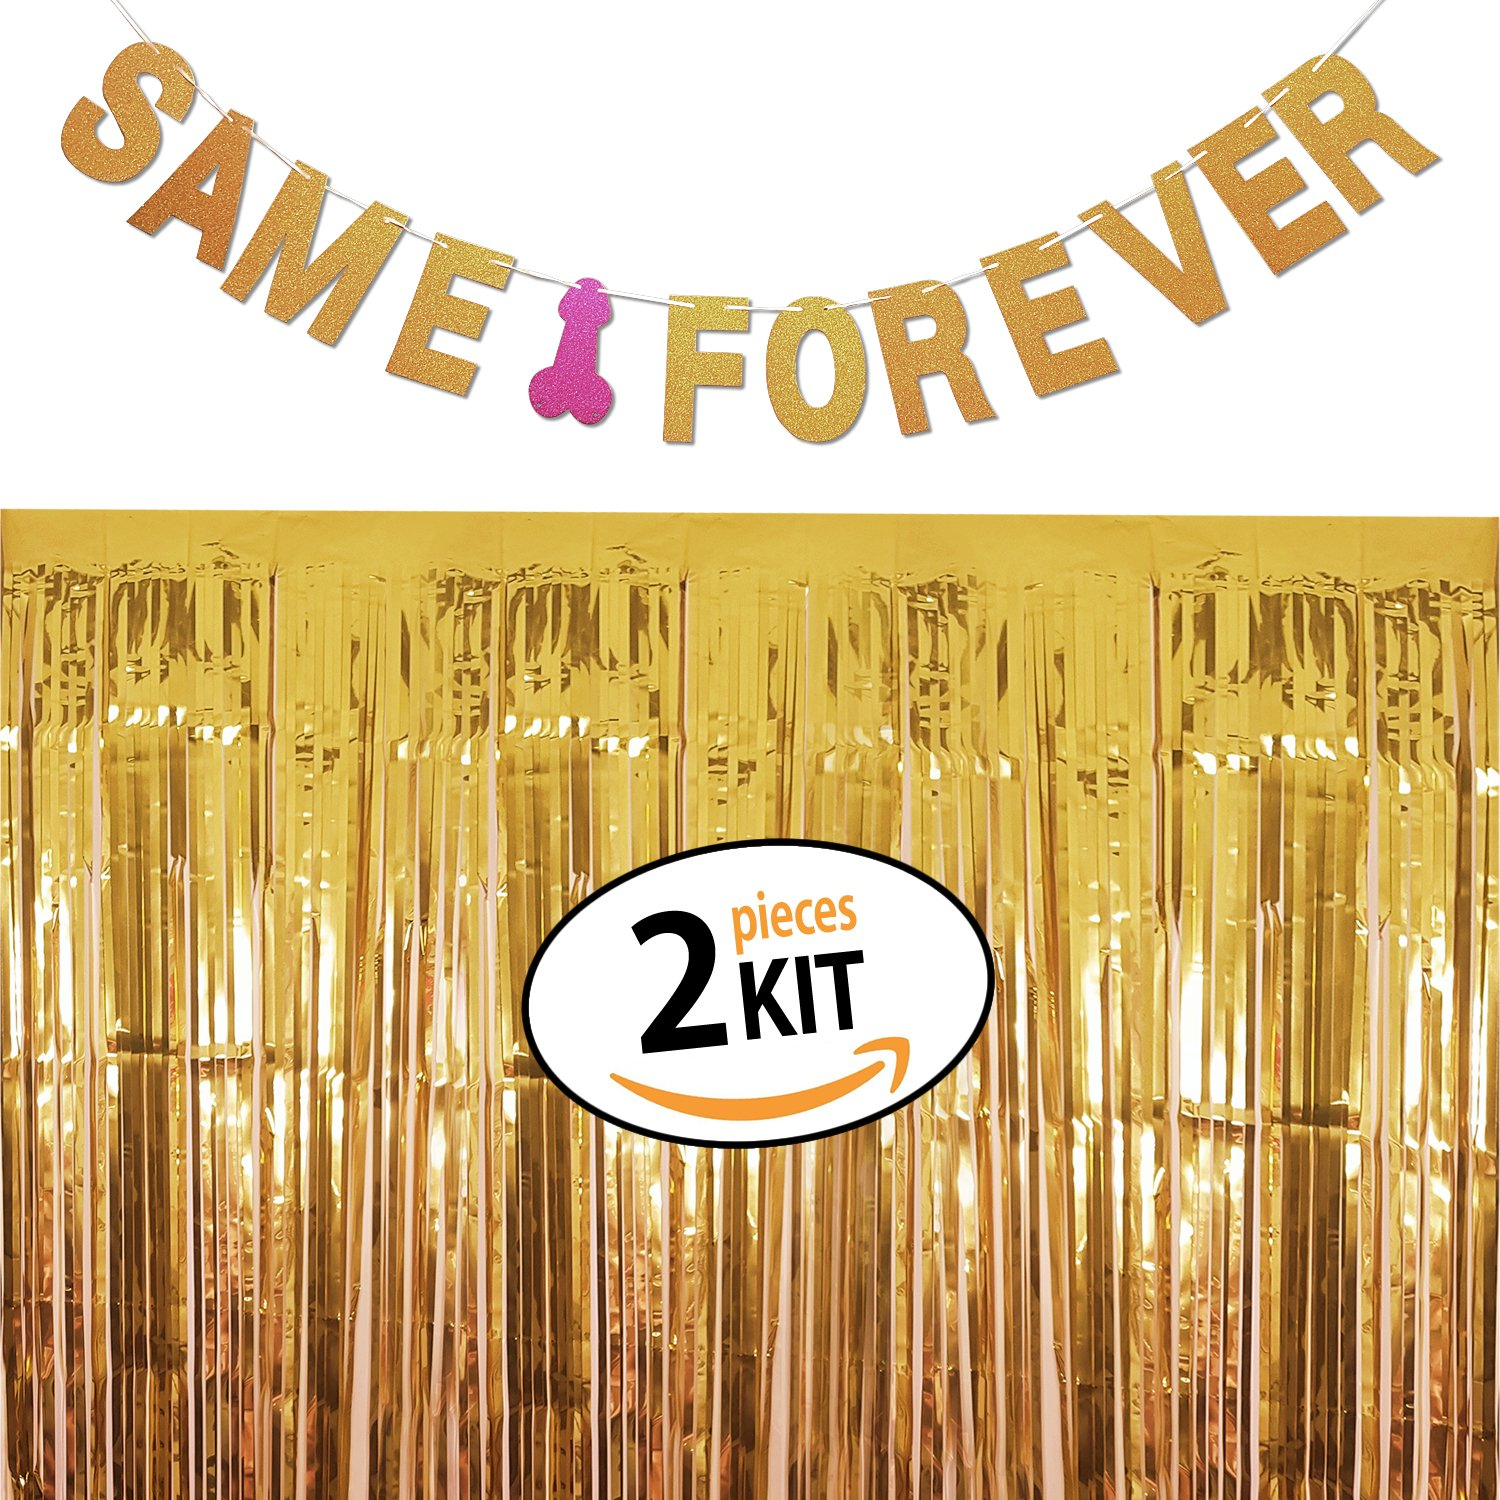 Amazon.com: Bachelorette Party Decorations Set | Same Penis Forever Banner  With Gold Foil Fringe Curtain, Perfect for Bride To Be Bridal Shower, ...